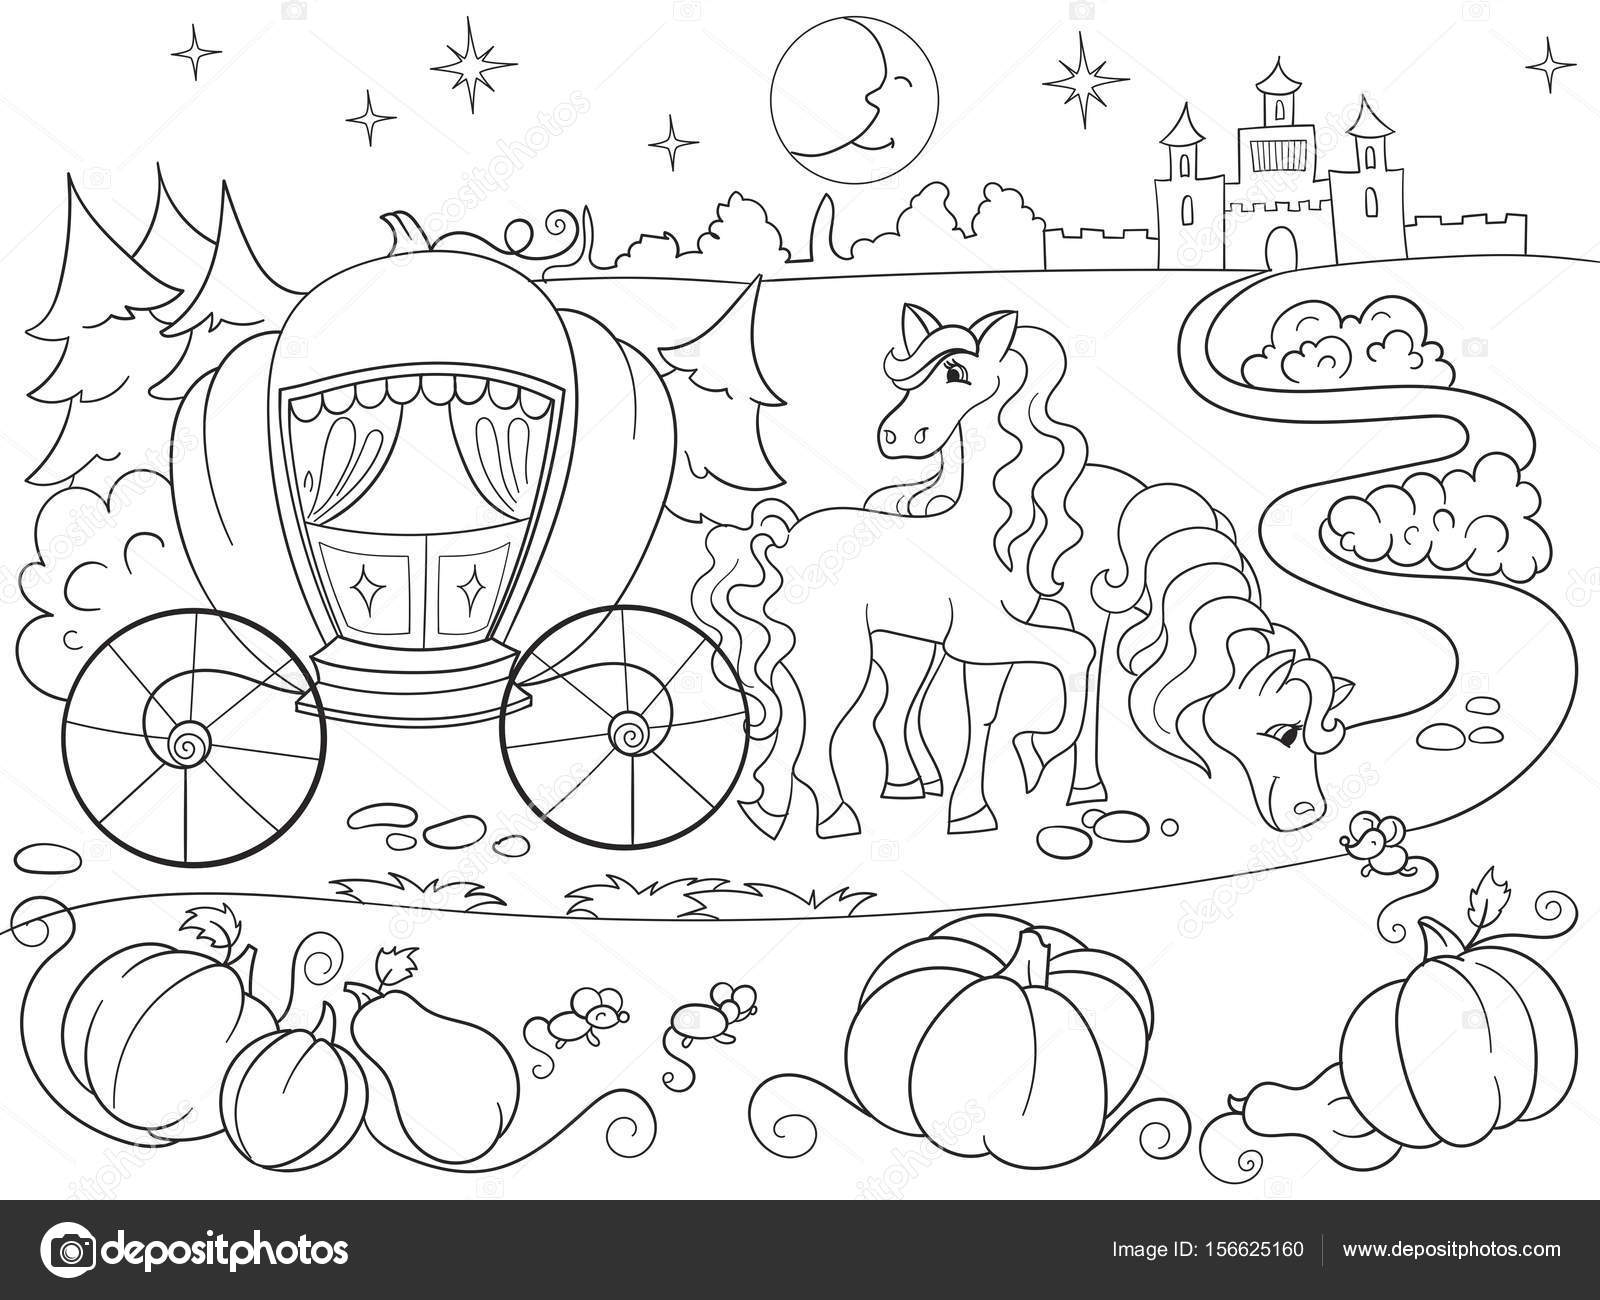 Cinderella Fairy Tale Coloring Book For Children Cartoon Vector